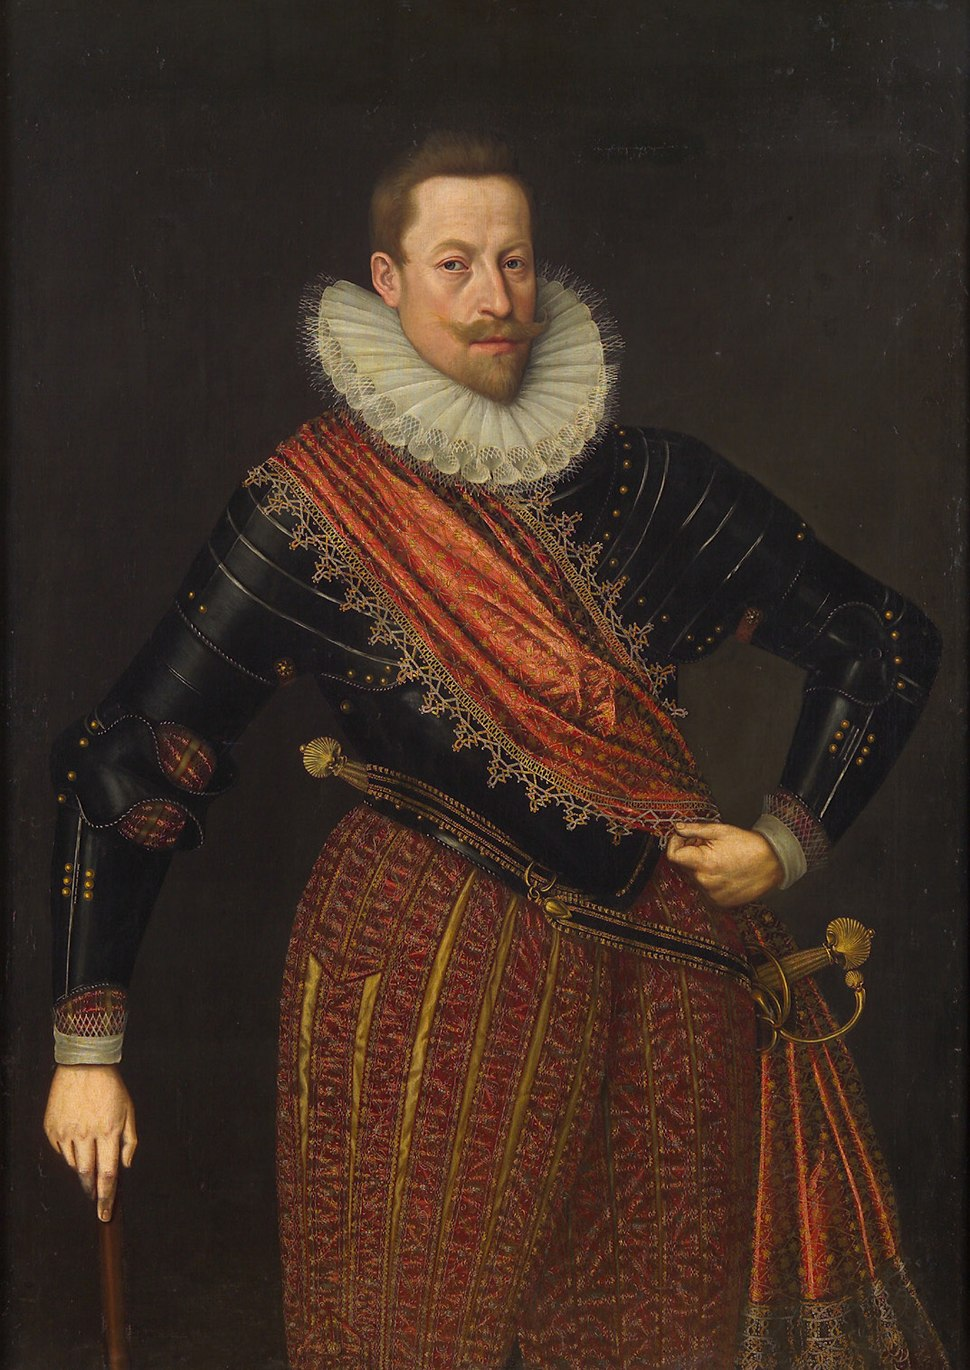 Lucas van Valckenborch - Emperor Matthias as Archduke, with baton